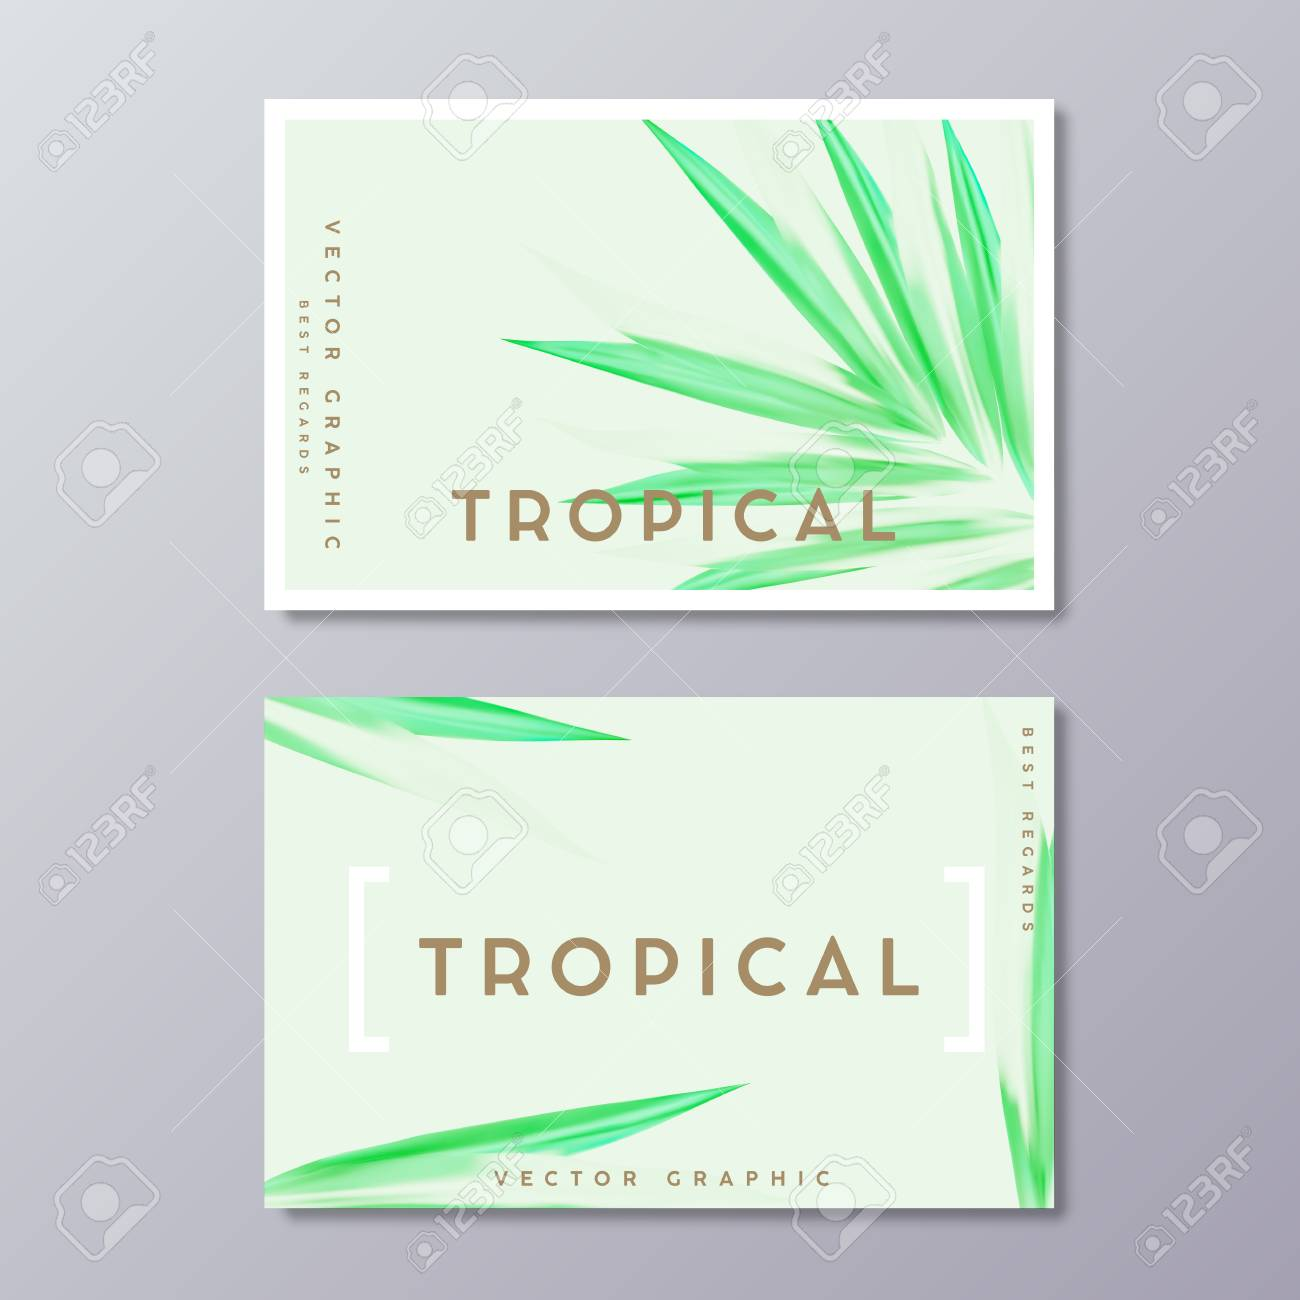 herbal medicine or spa treatment business card templates tropical green lush foliage botanical